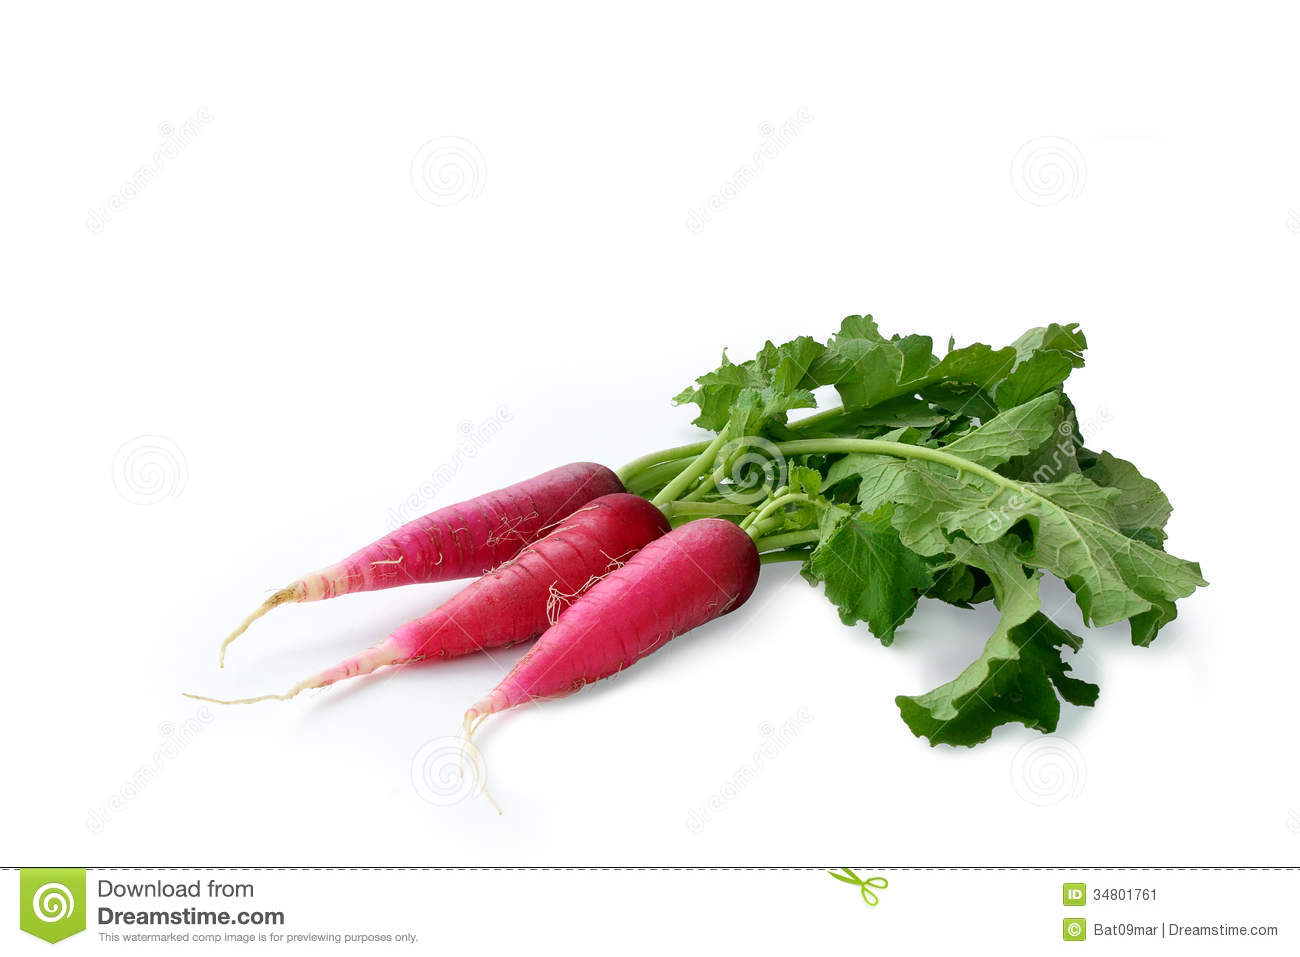 Bunch of red radish isolated on white background.